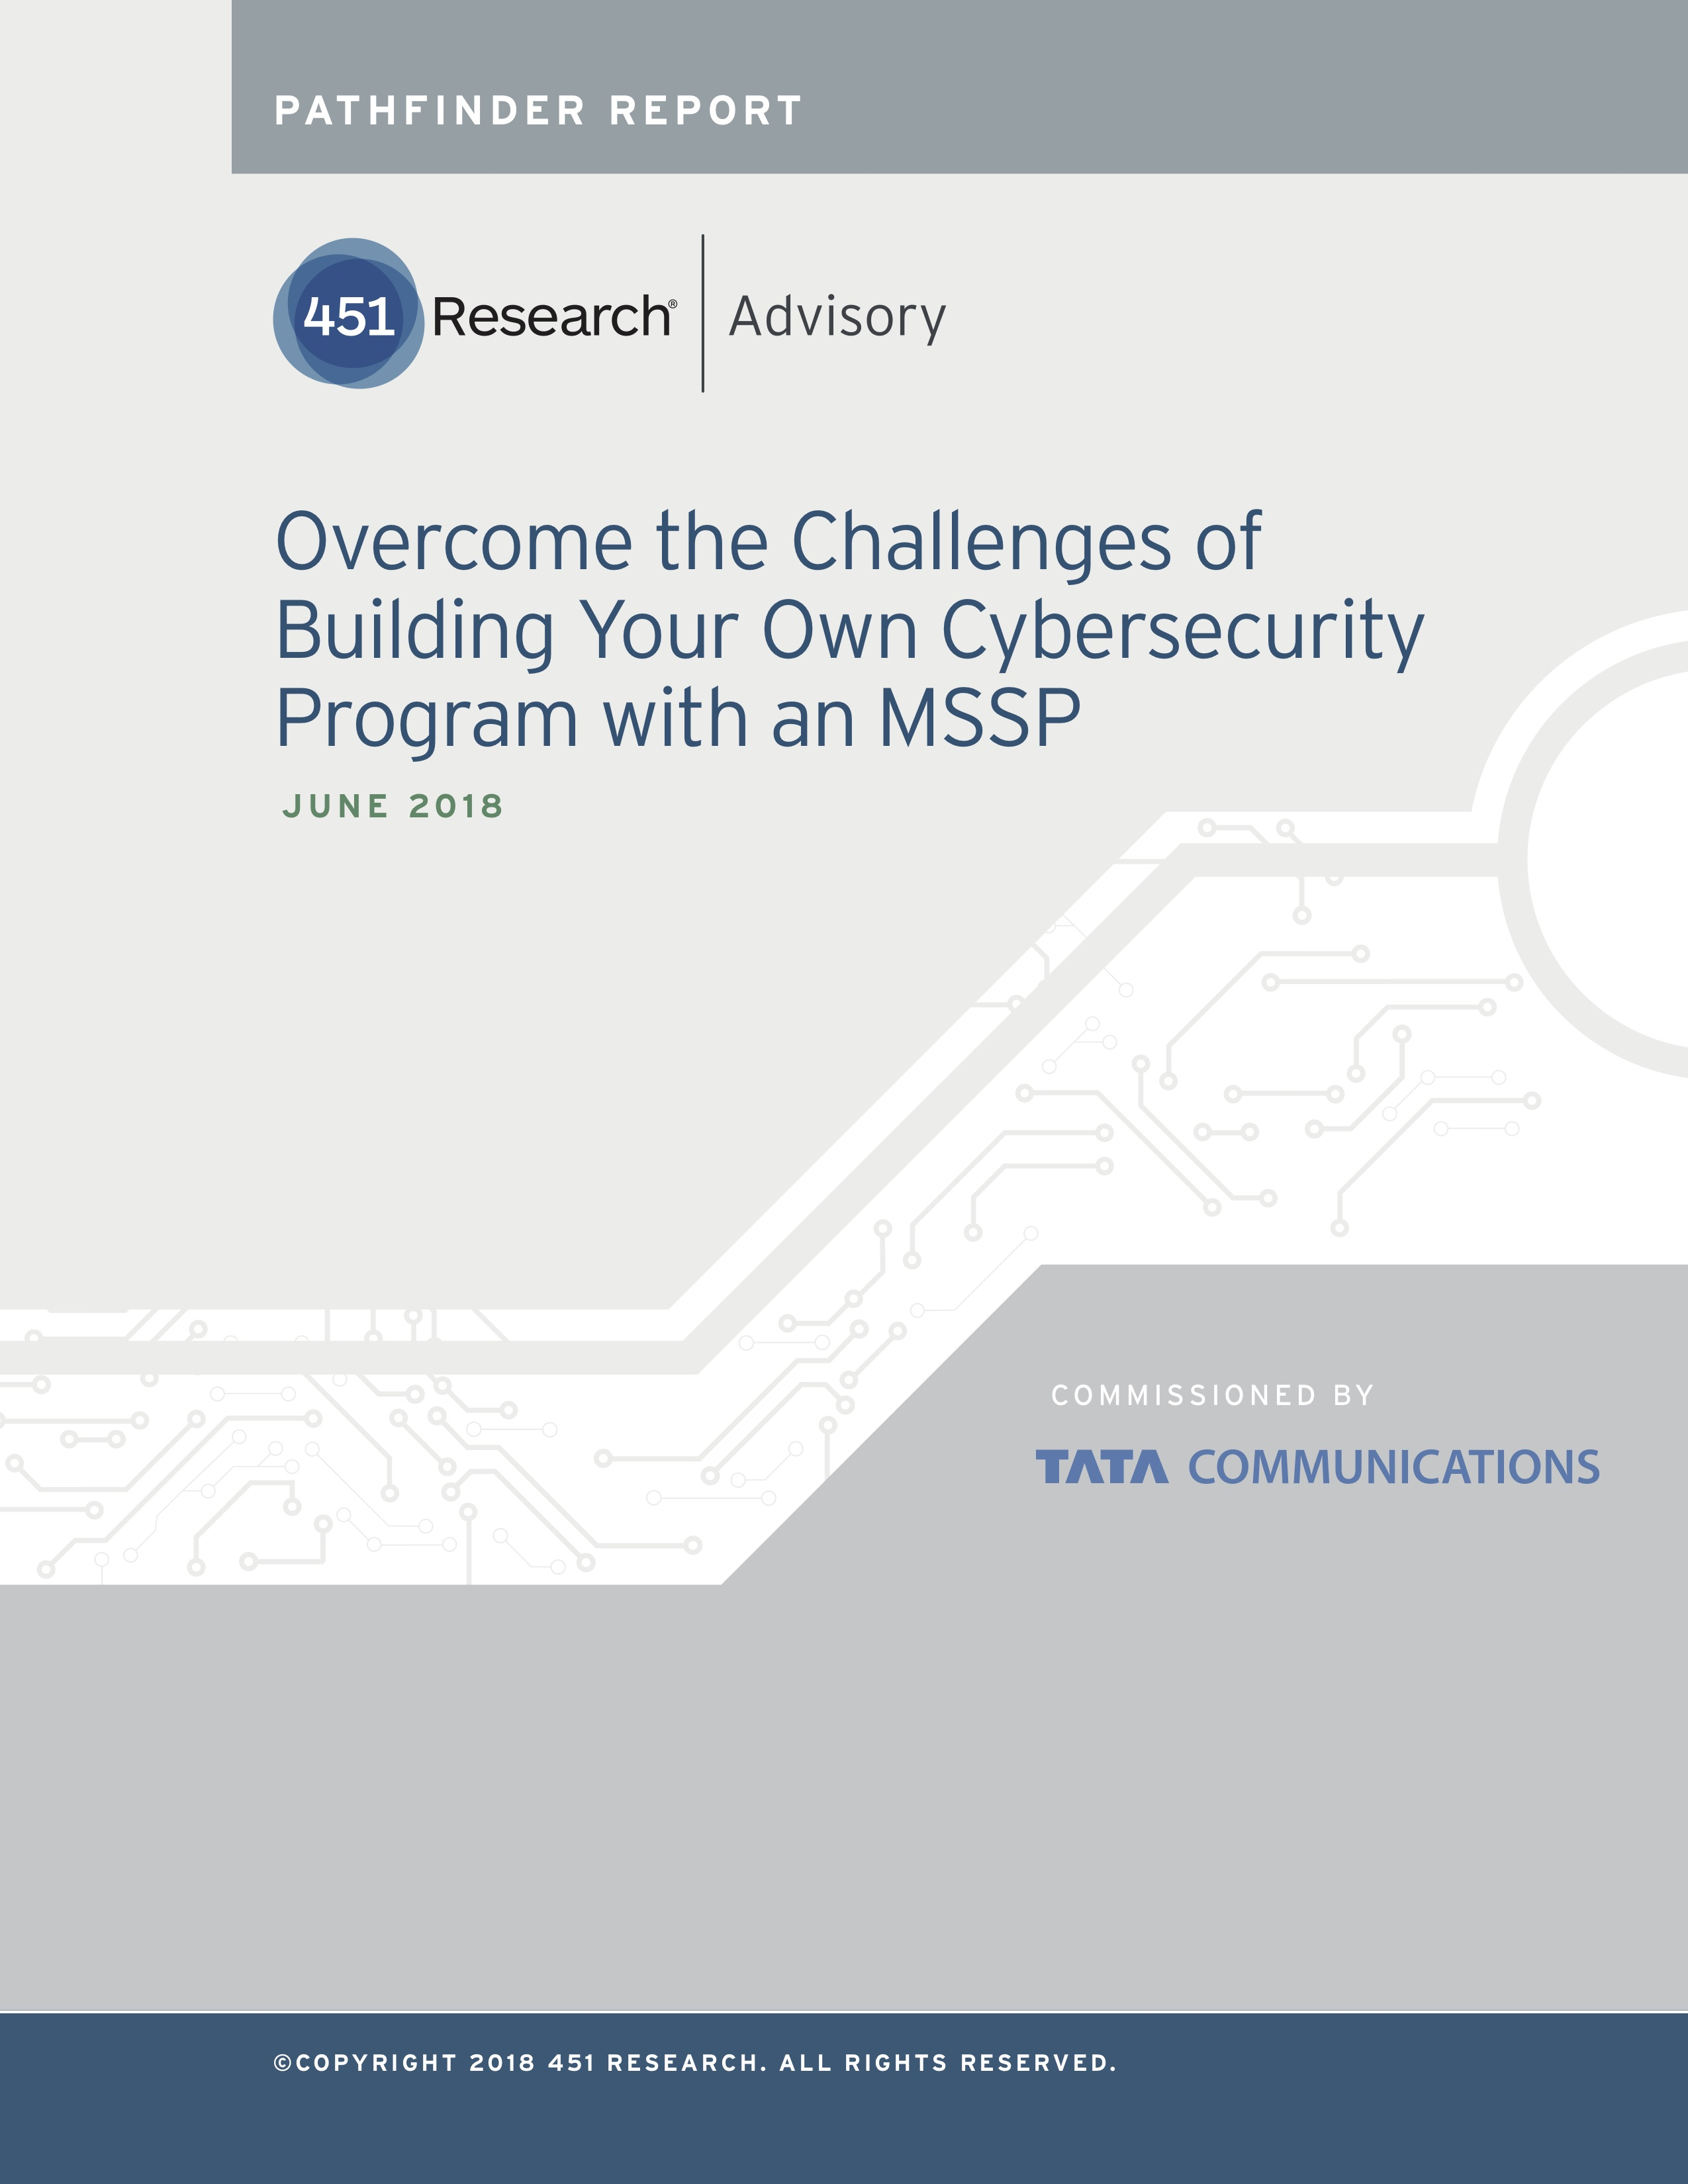 Pathfinder report  overcome the challenges of building your own cybersecurity program with an mssp